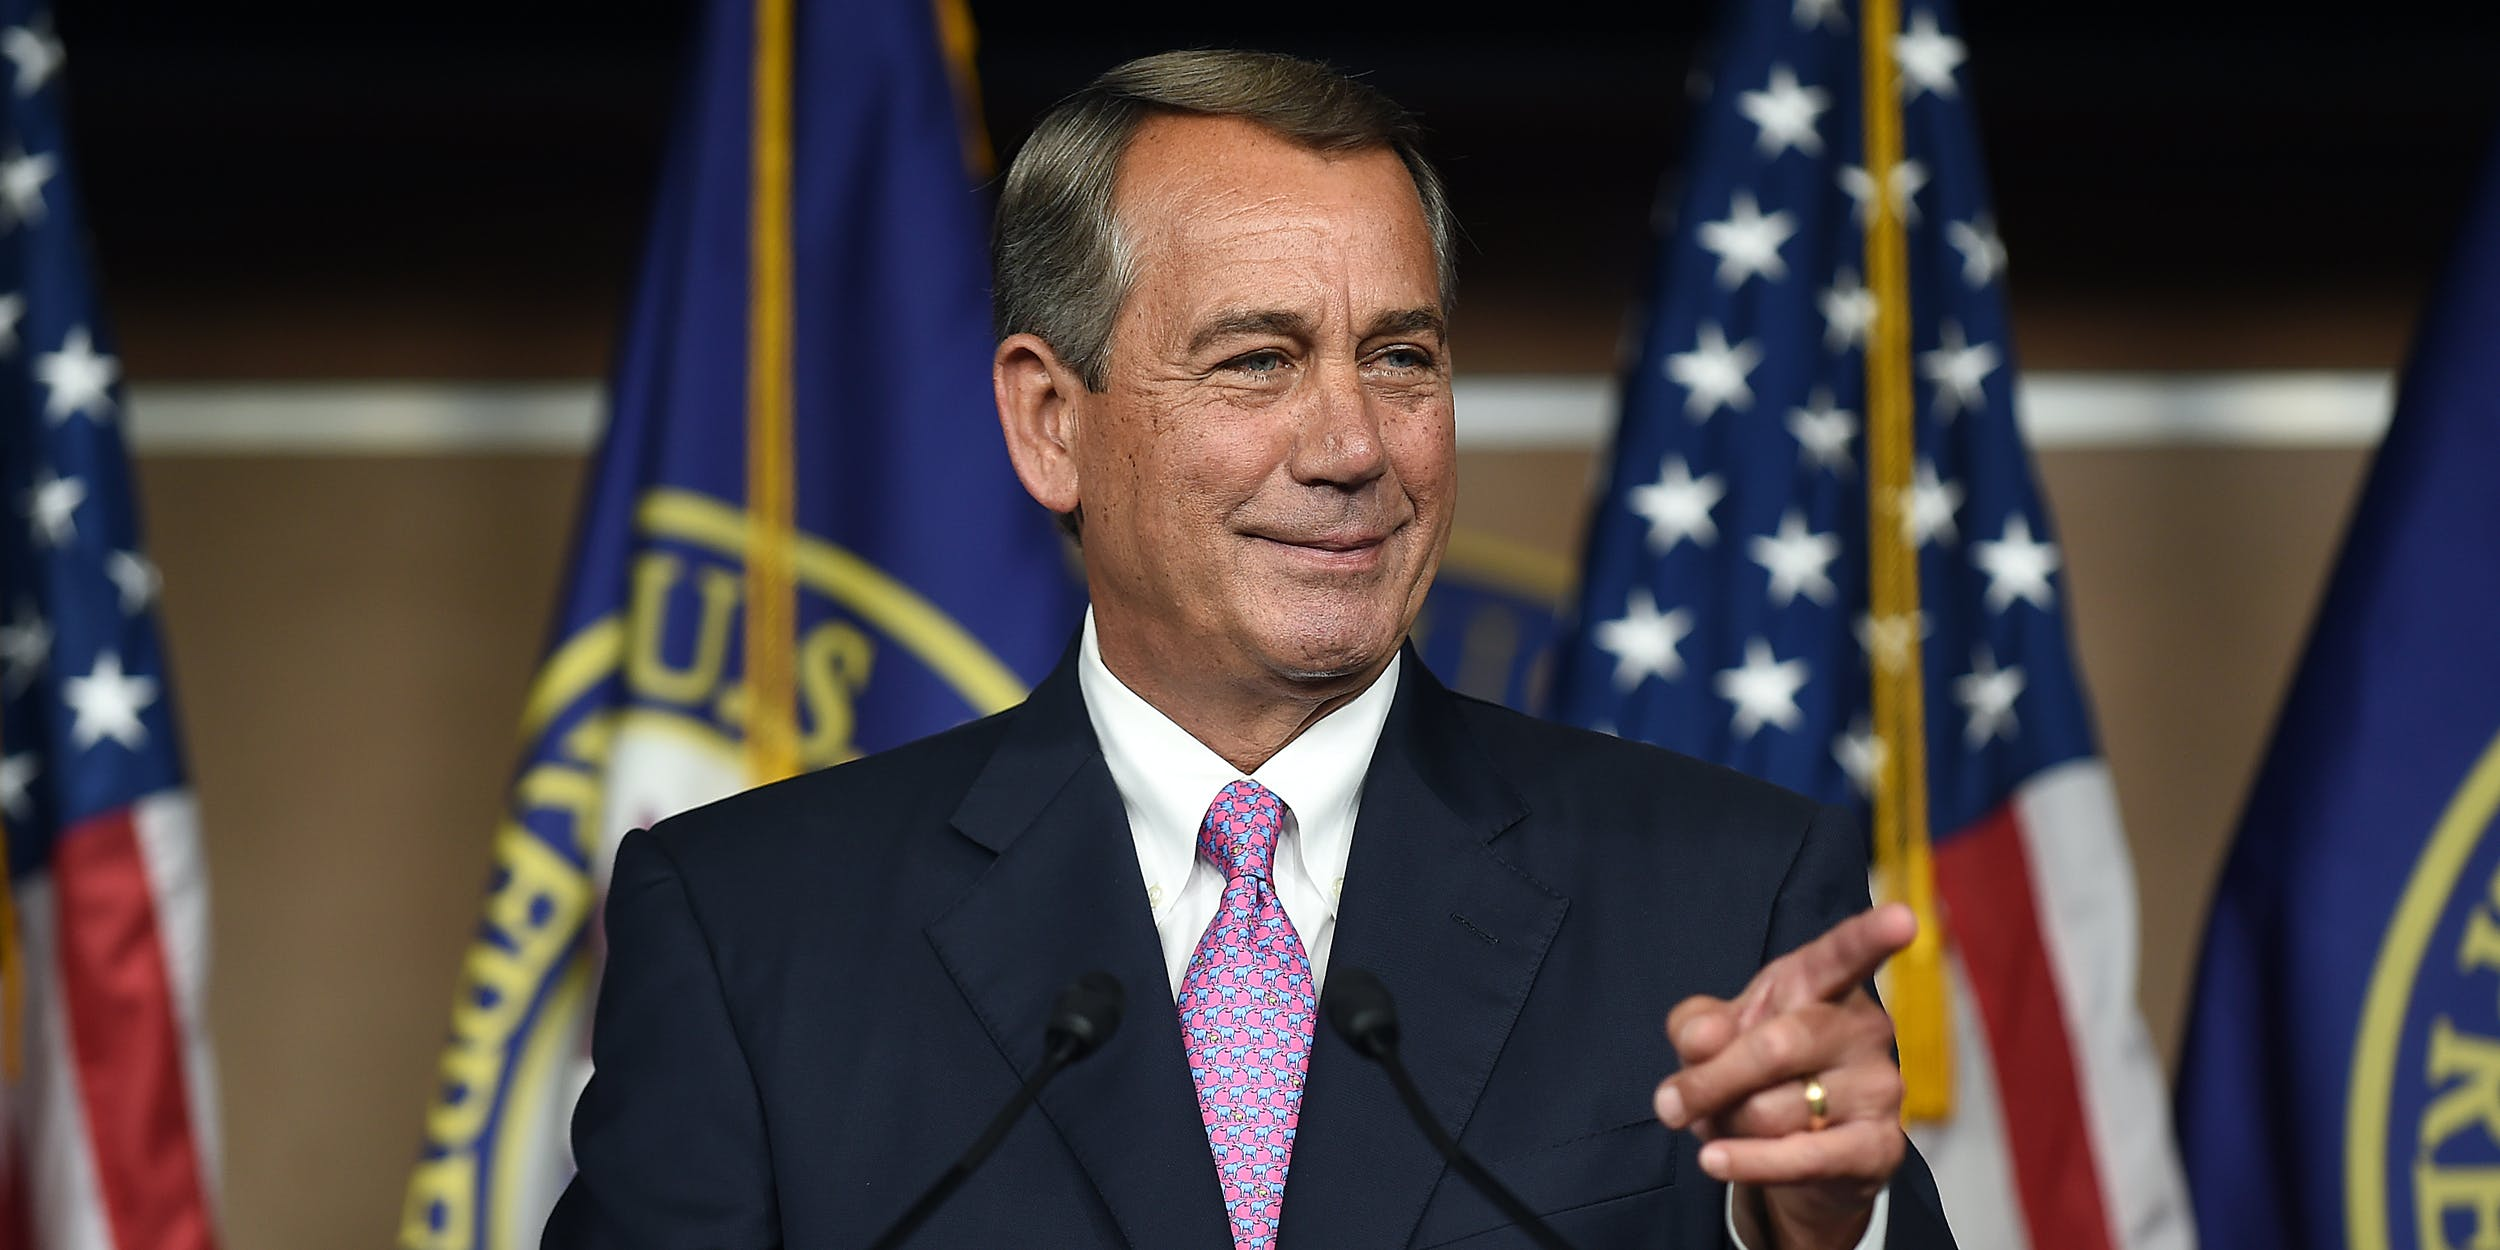 Former Speaker of the House John Boehner just publicly supported de-scheduling cannabis